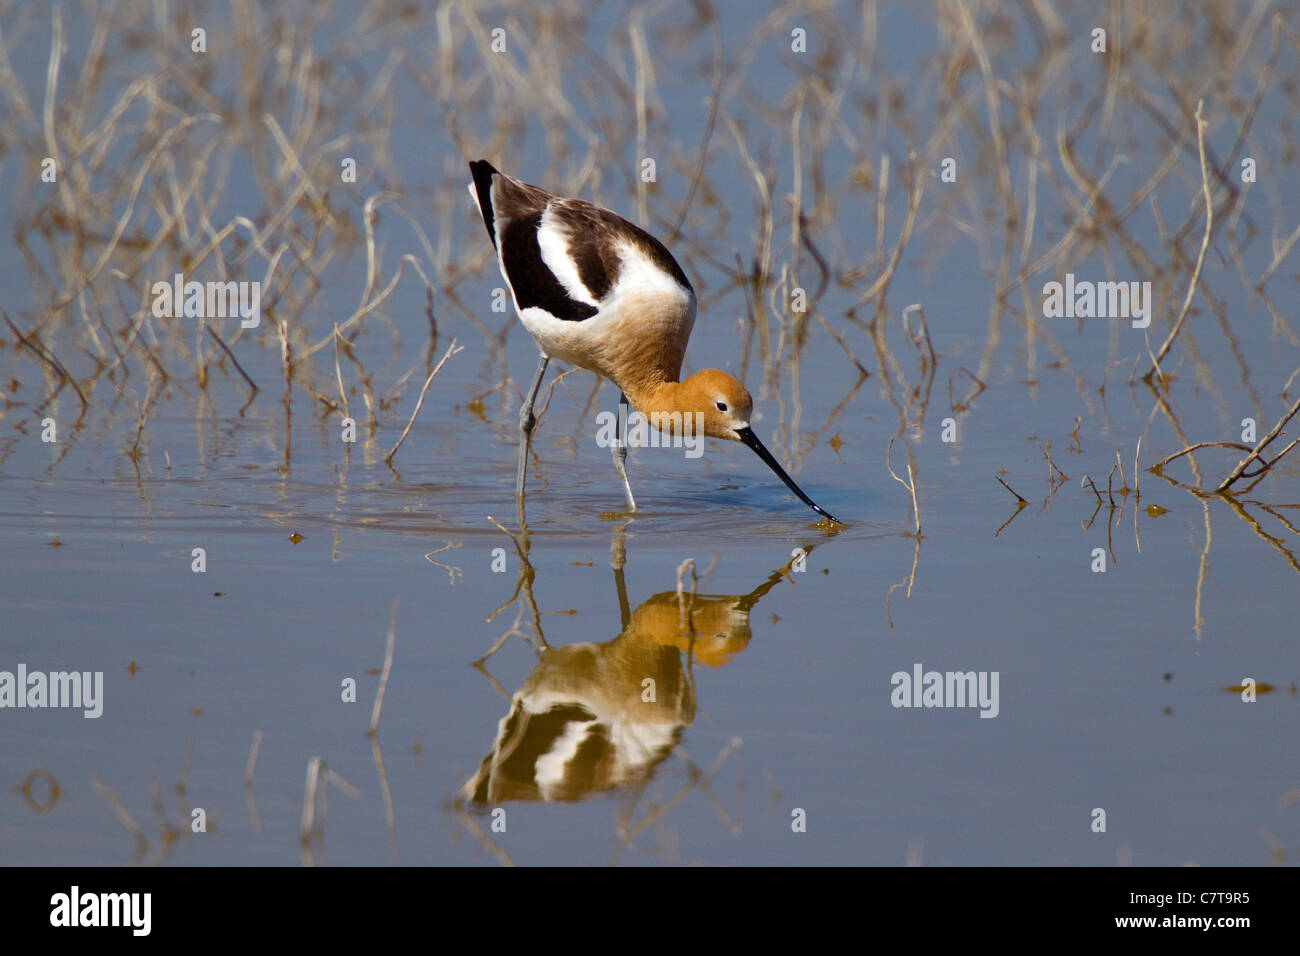 American Avocet Recurvirostra americana Klamath Falls, Oregon, United States 9 May Adult Male in breeding plumage. Stock Photo